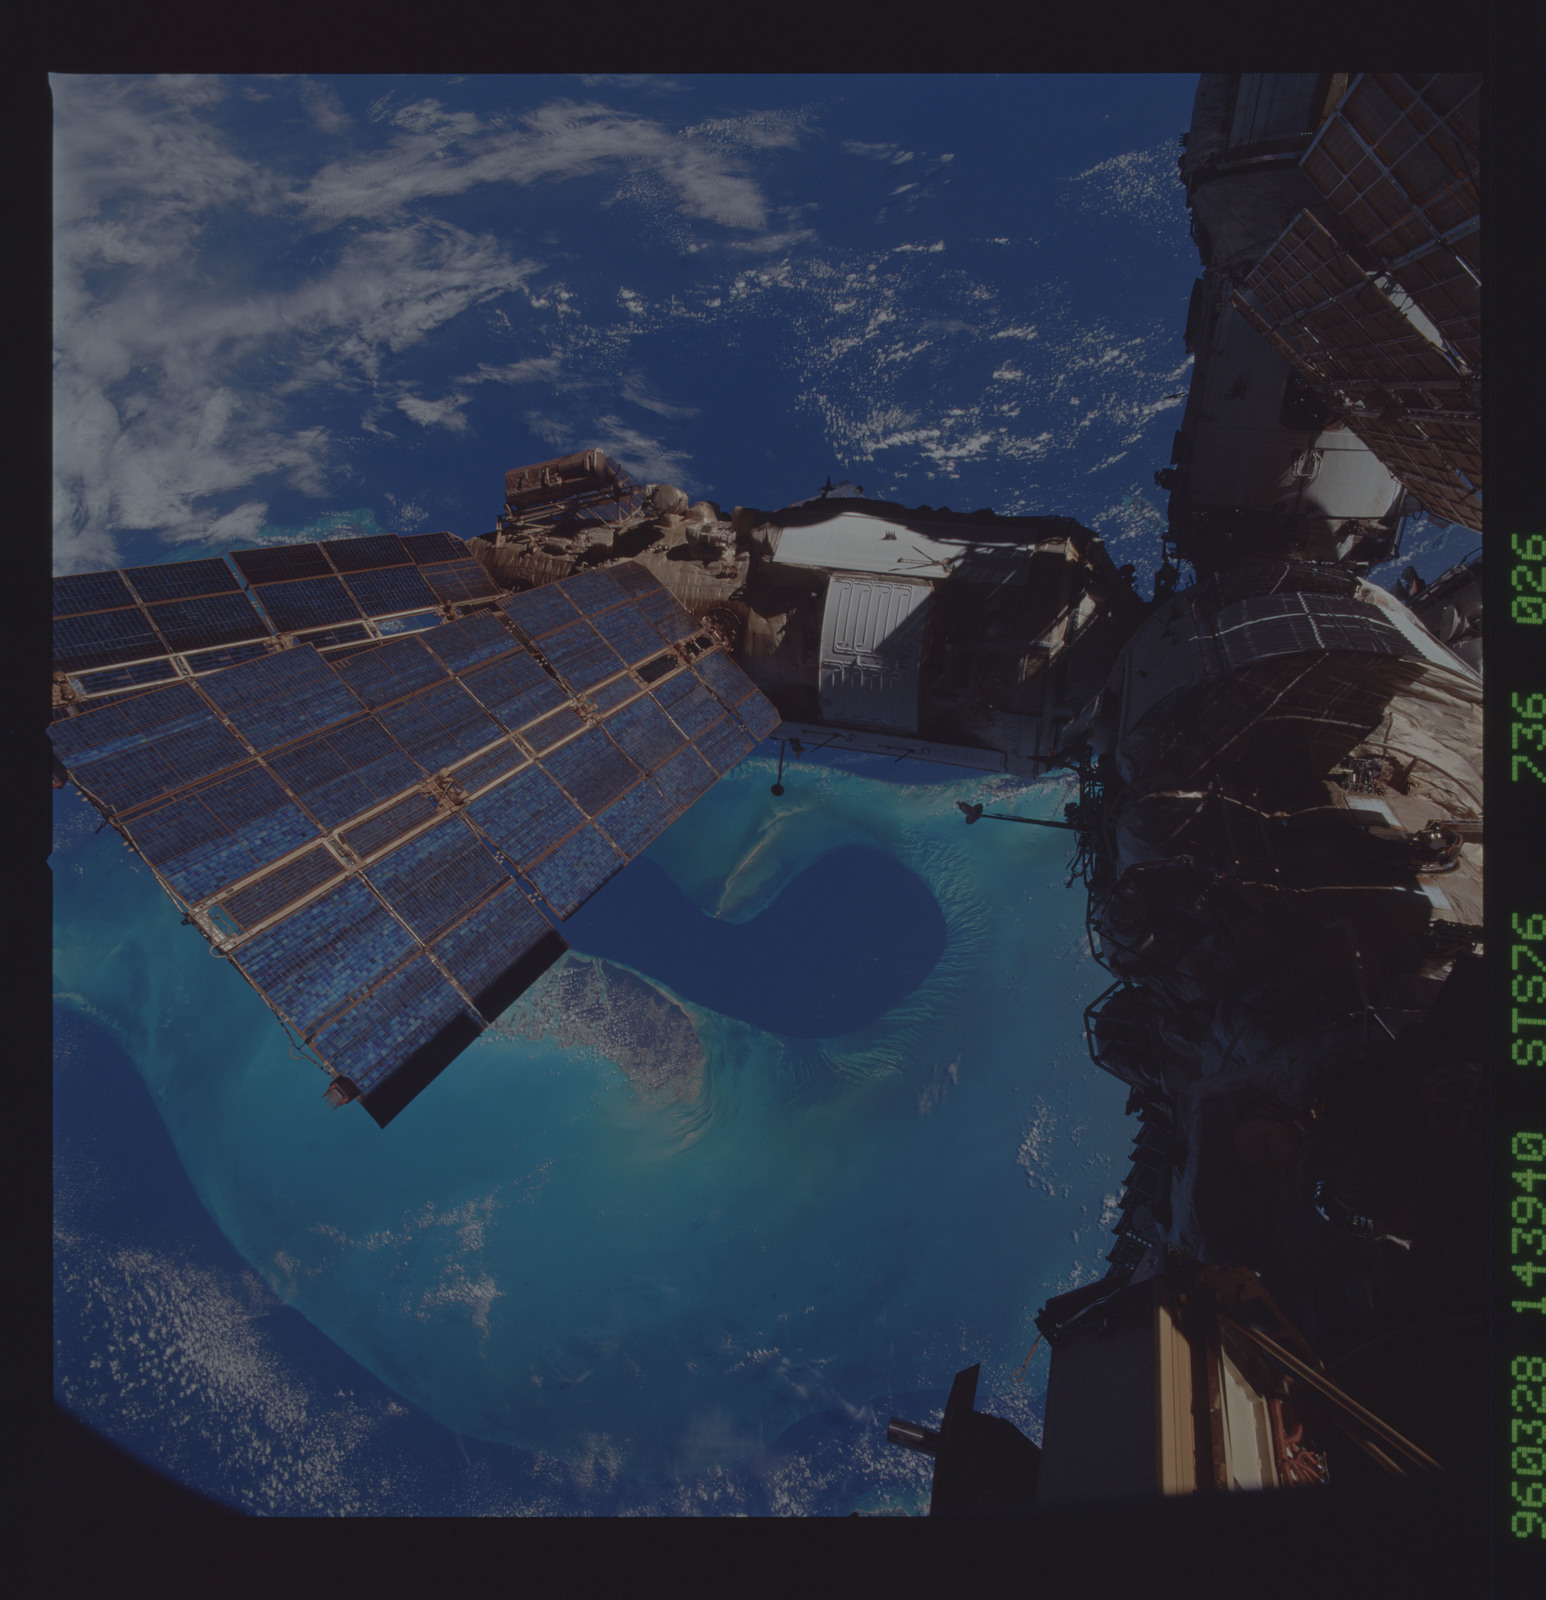 STS076-736-026 - STS-076 - Mir Space Station views taken during STS-76 mission